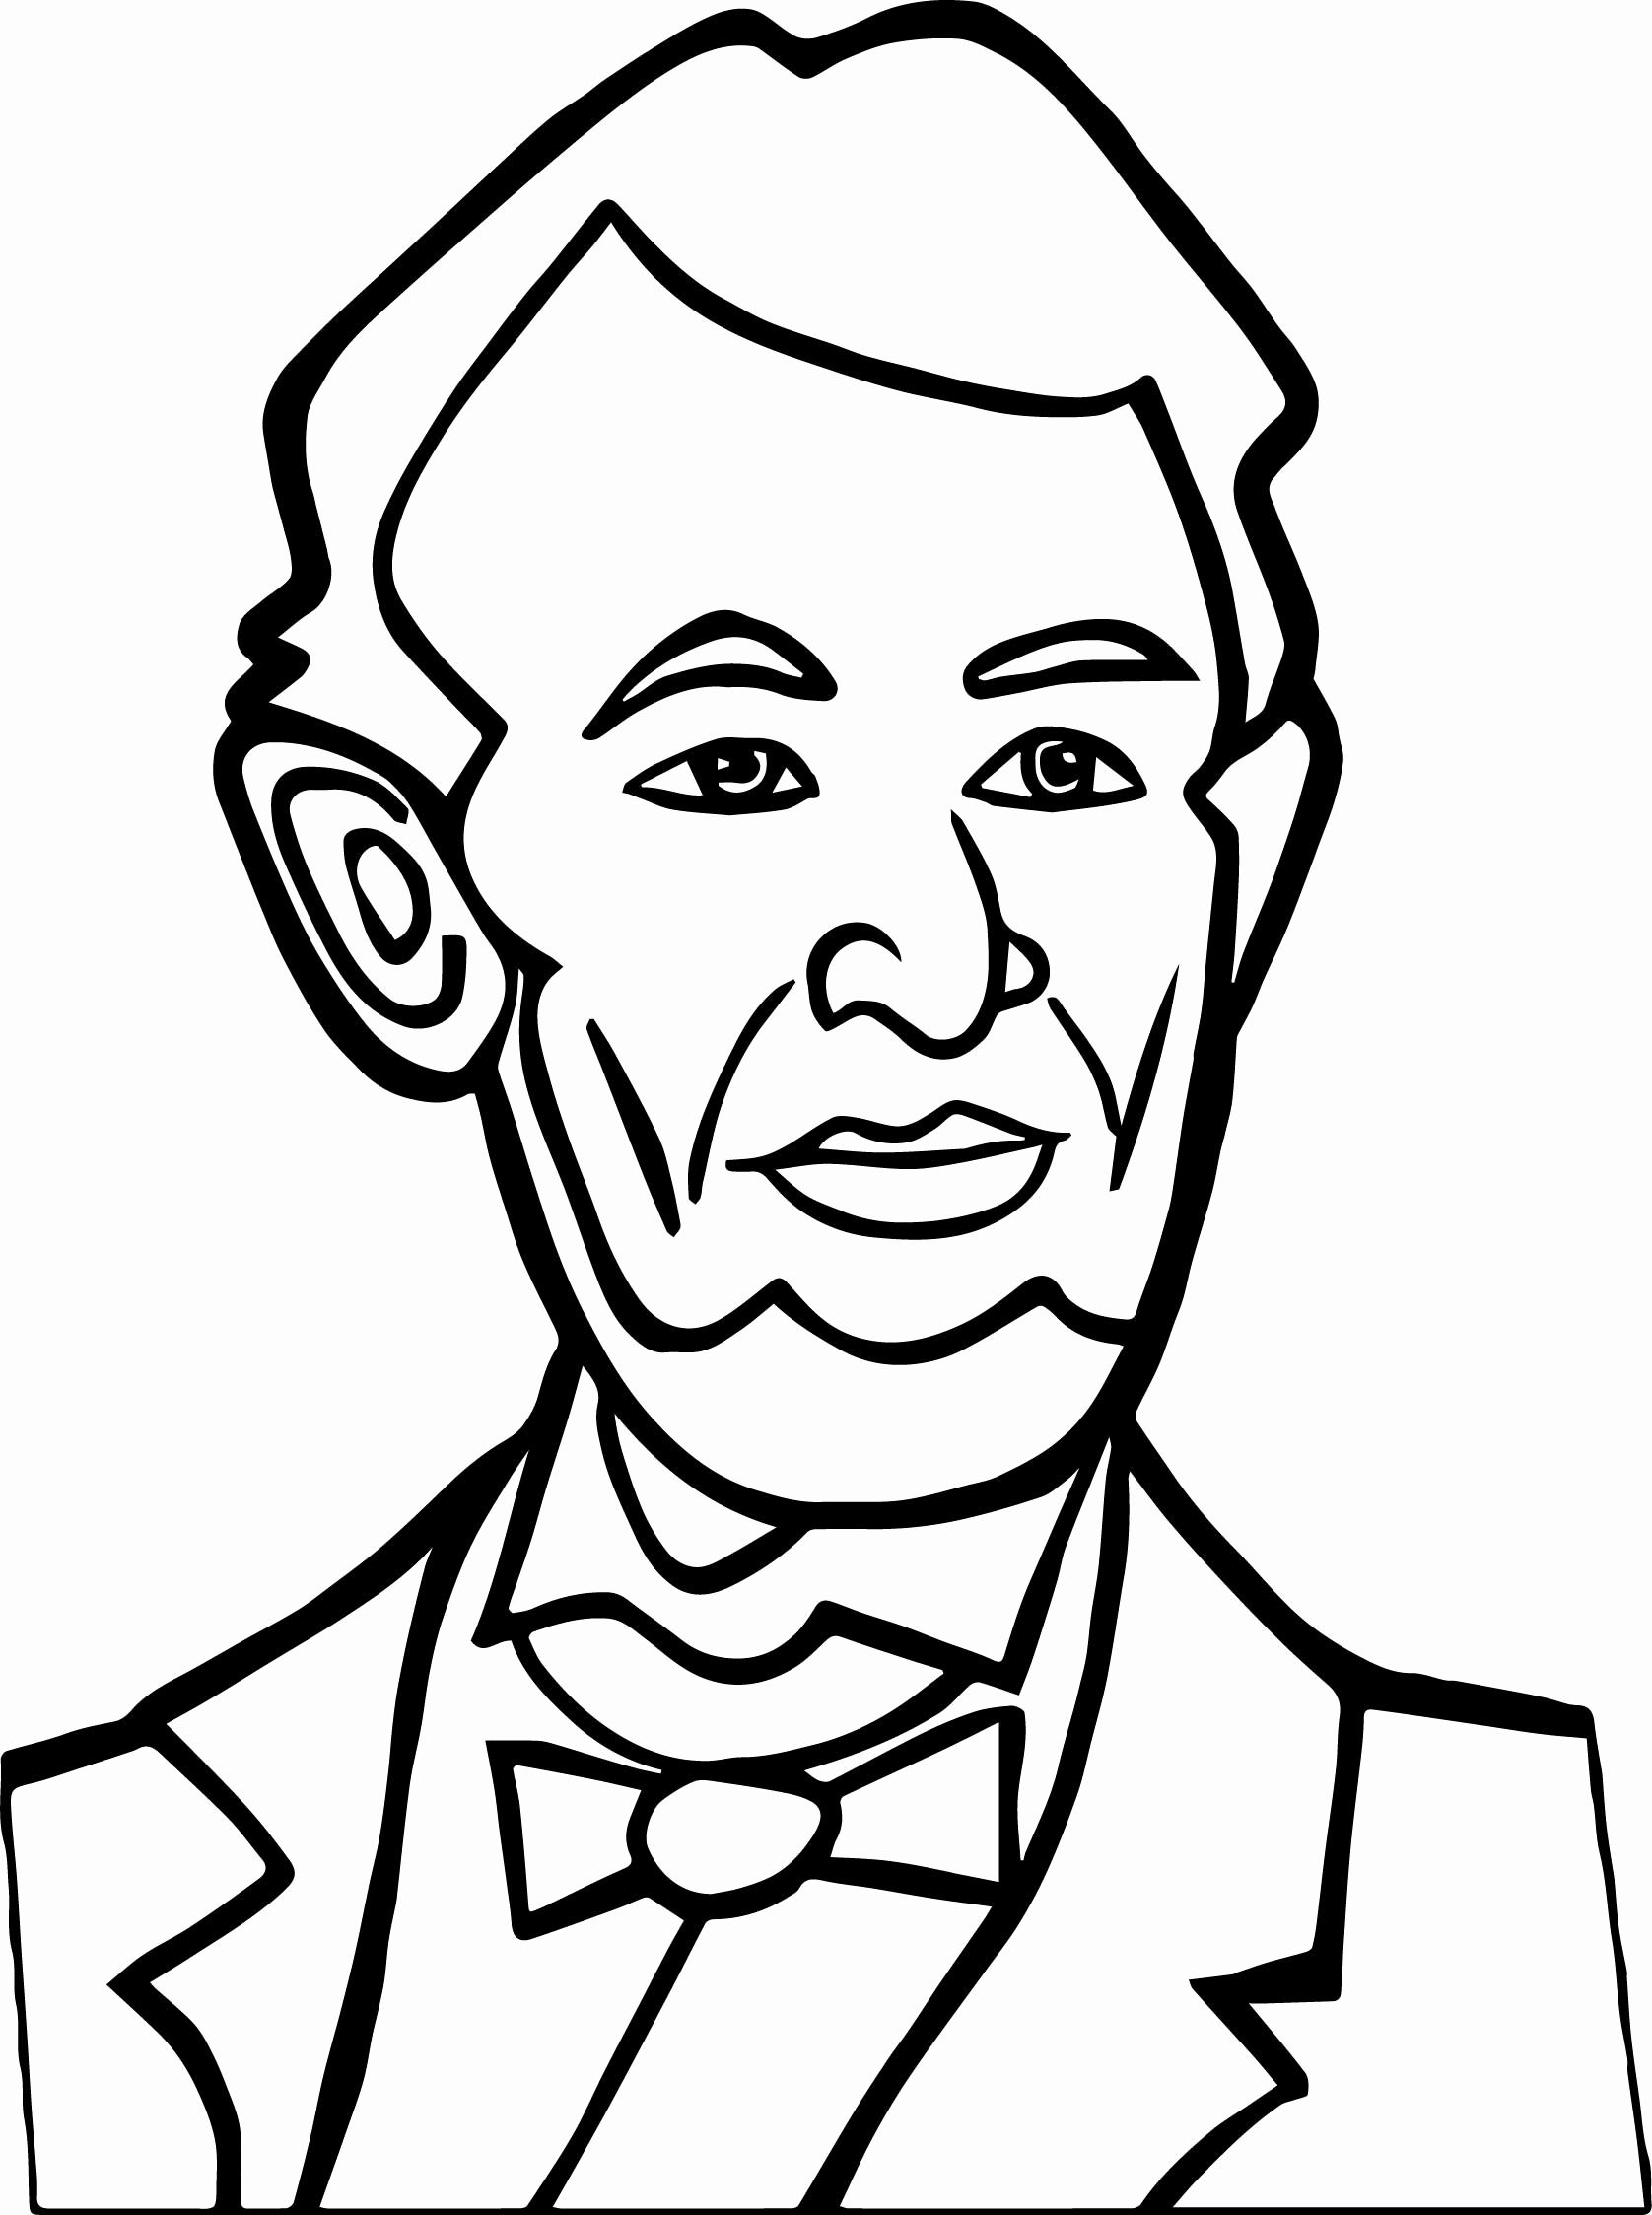 abraham lincoln coloring page abraham lincoln coloring page at getcoloringscom free page lincoln abraham coloring